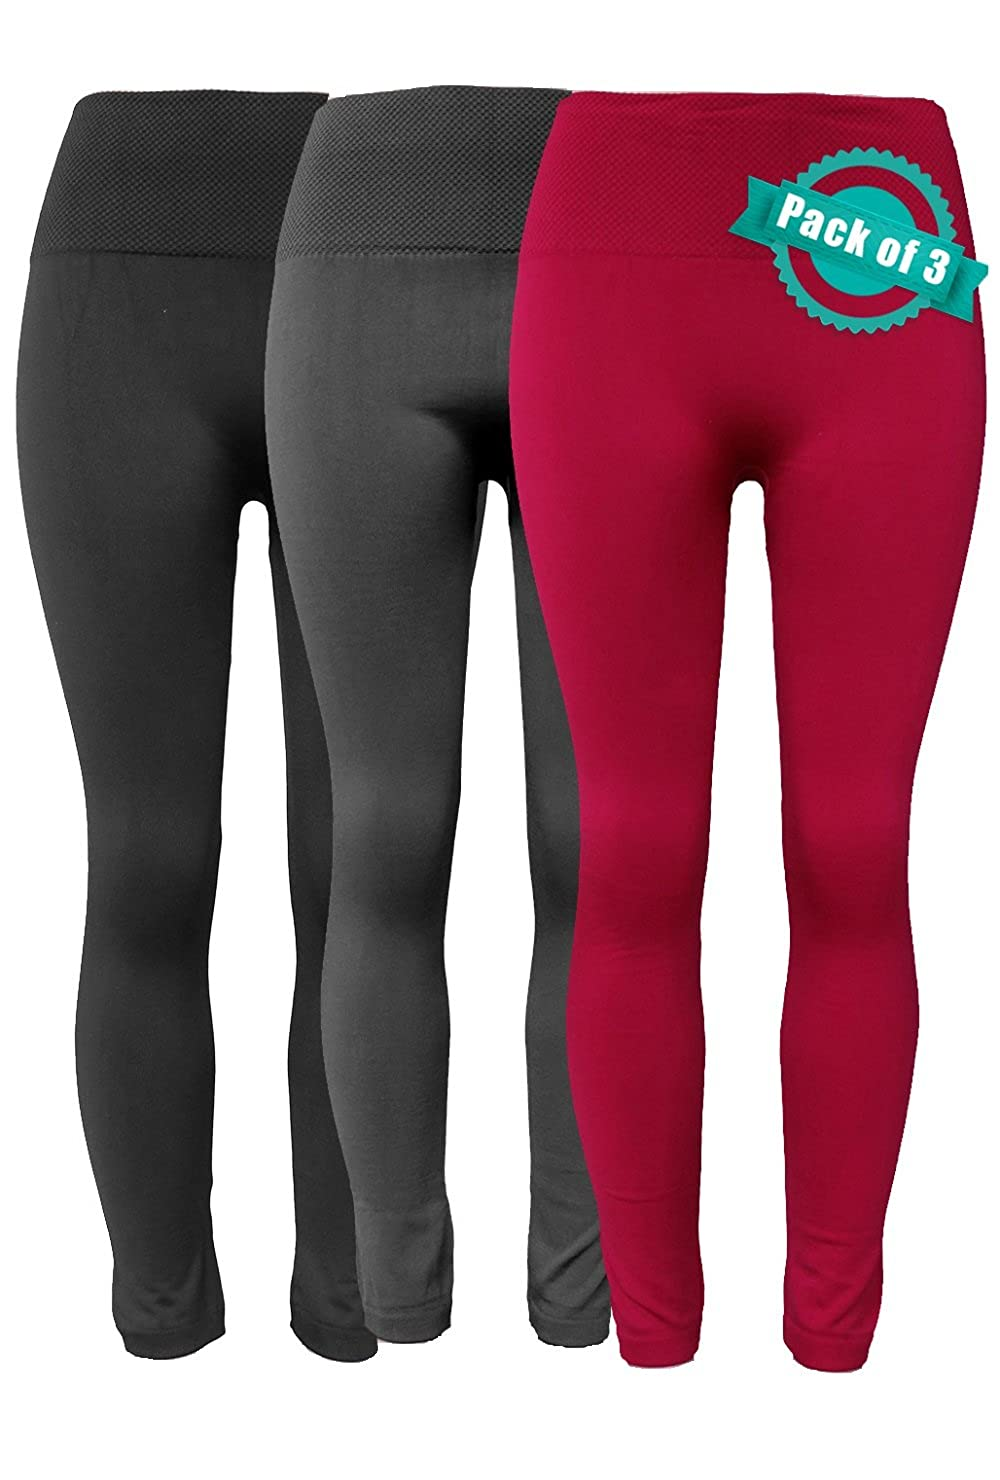 ccd5ed2c9eea7c COMFORT, WARM and SLIMMING: Stay warm this winter while feeling comfortable  and looking great. Sipaya 28